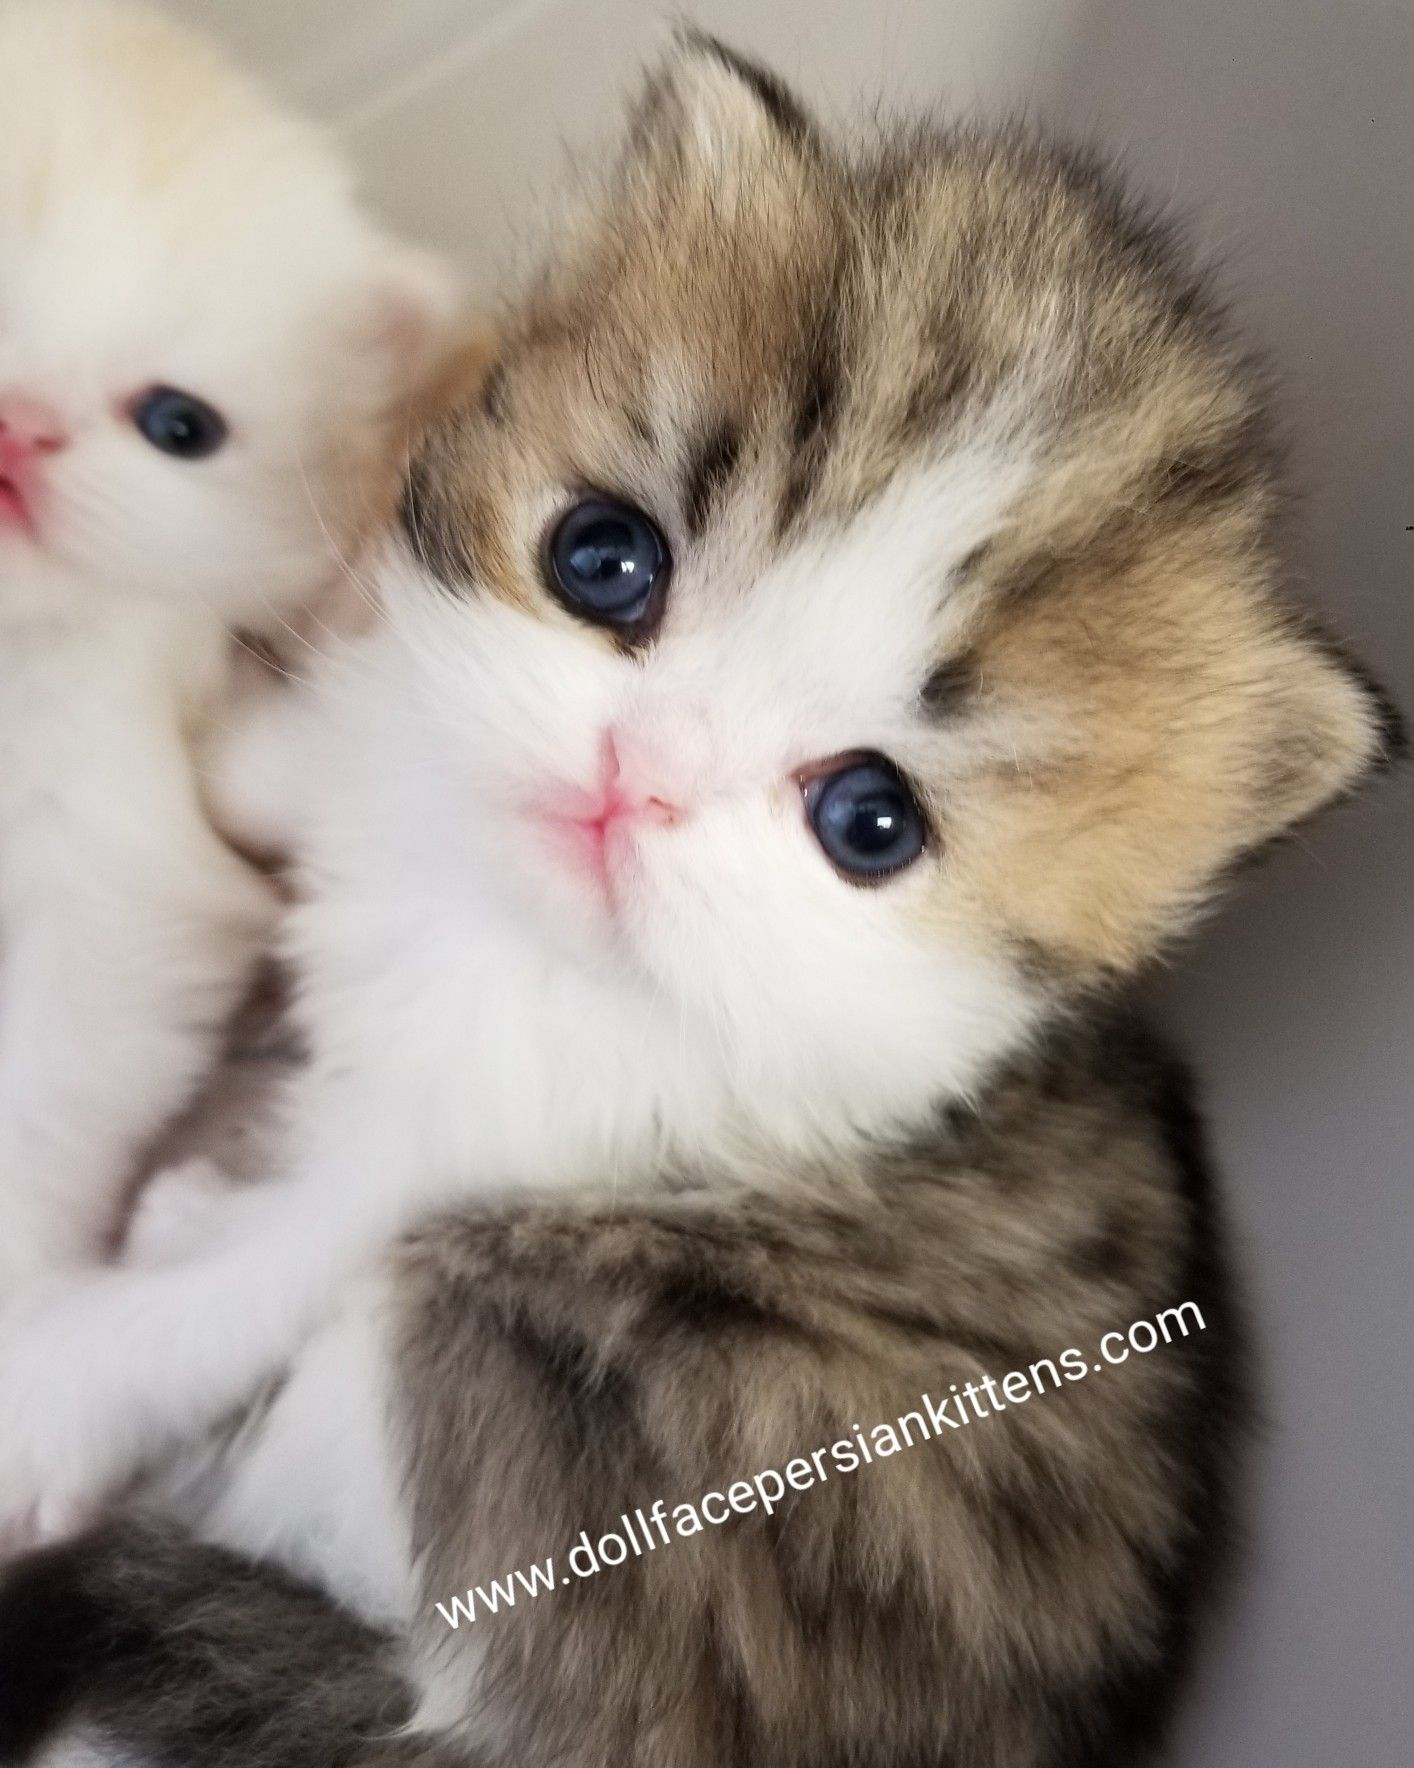 Did This Sweet Baby Kitten Capture Your Heart Would You Like One Of Your Own Well Then We Invite You To In 2020 Kittens Cutest Persian Kittens White Persian Kittens